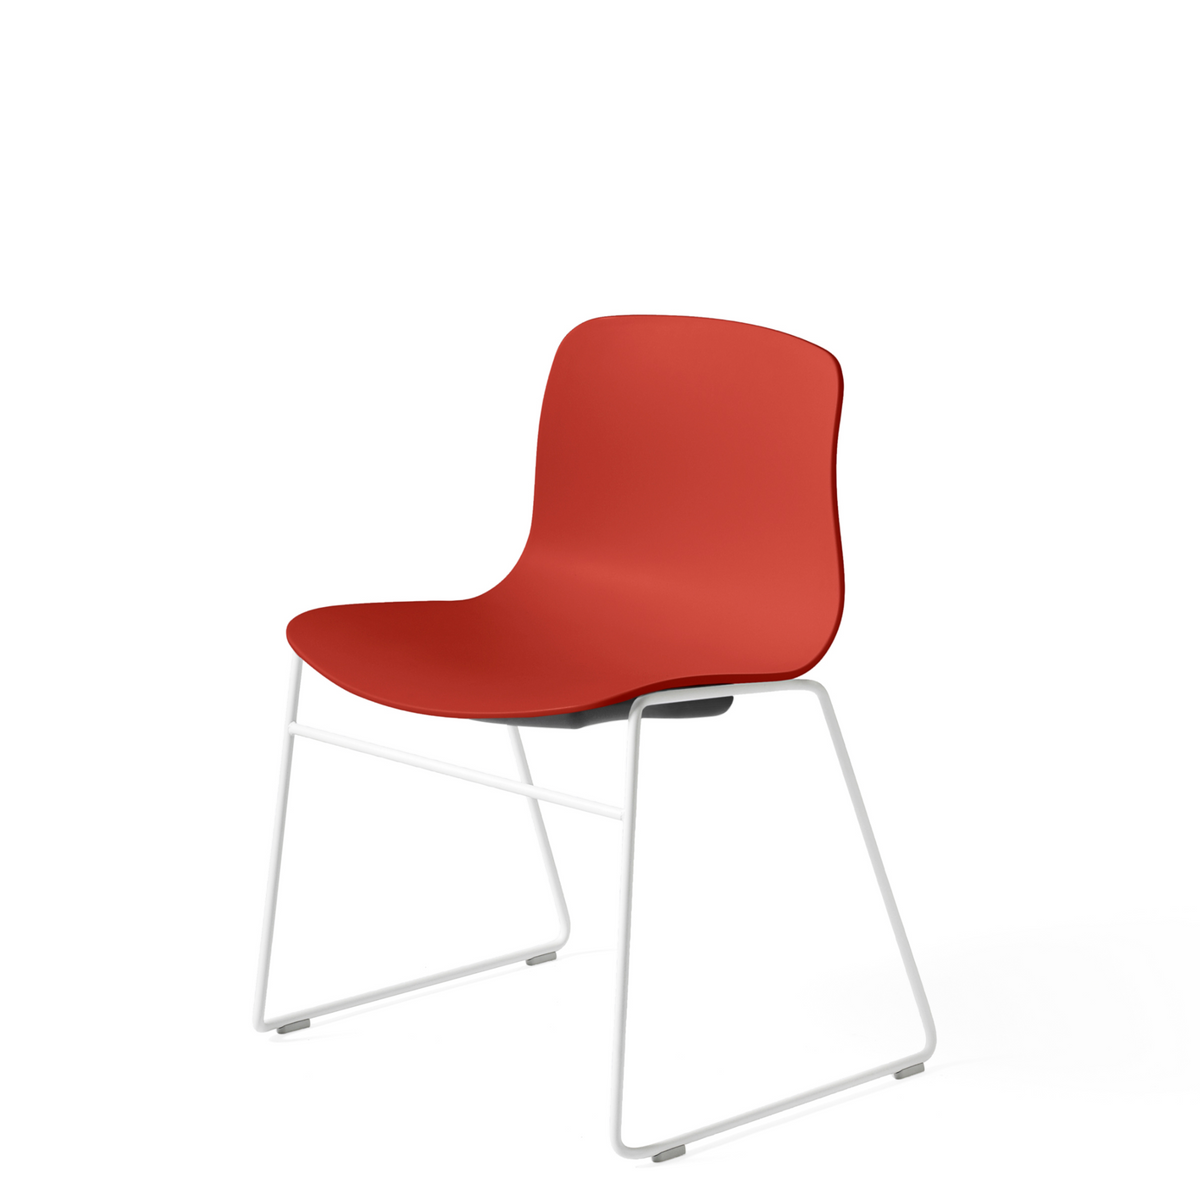 HAY About A Chair AAC 08 Warm Red Stackable Chair with White Powder Coated Base